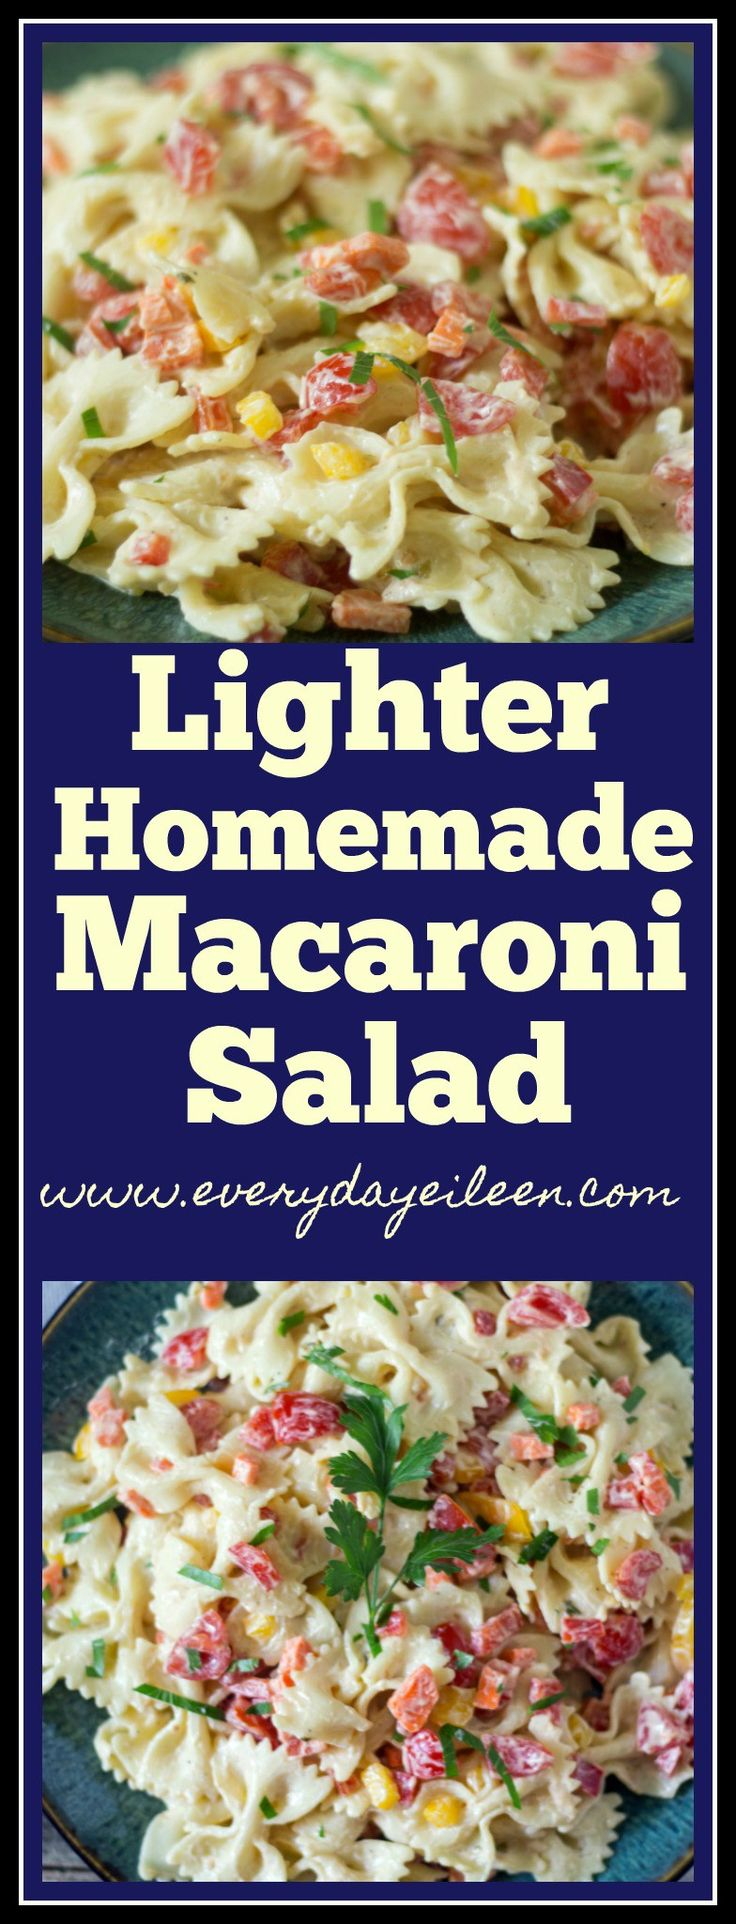 Lighter Homemade Macaroni Salad